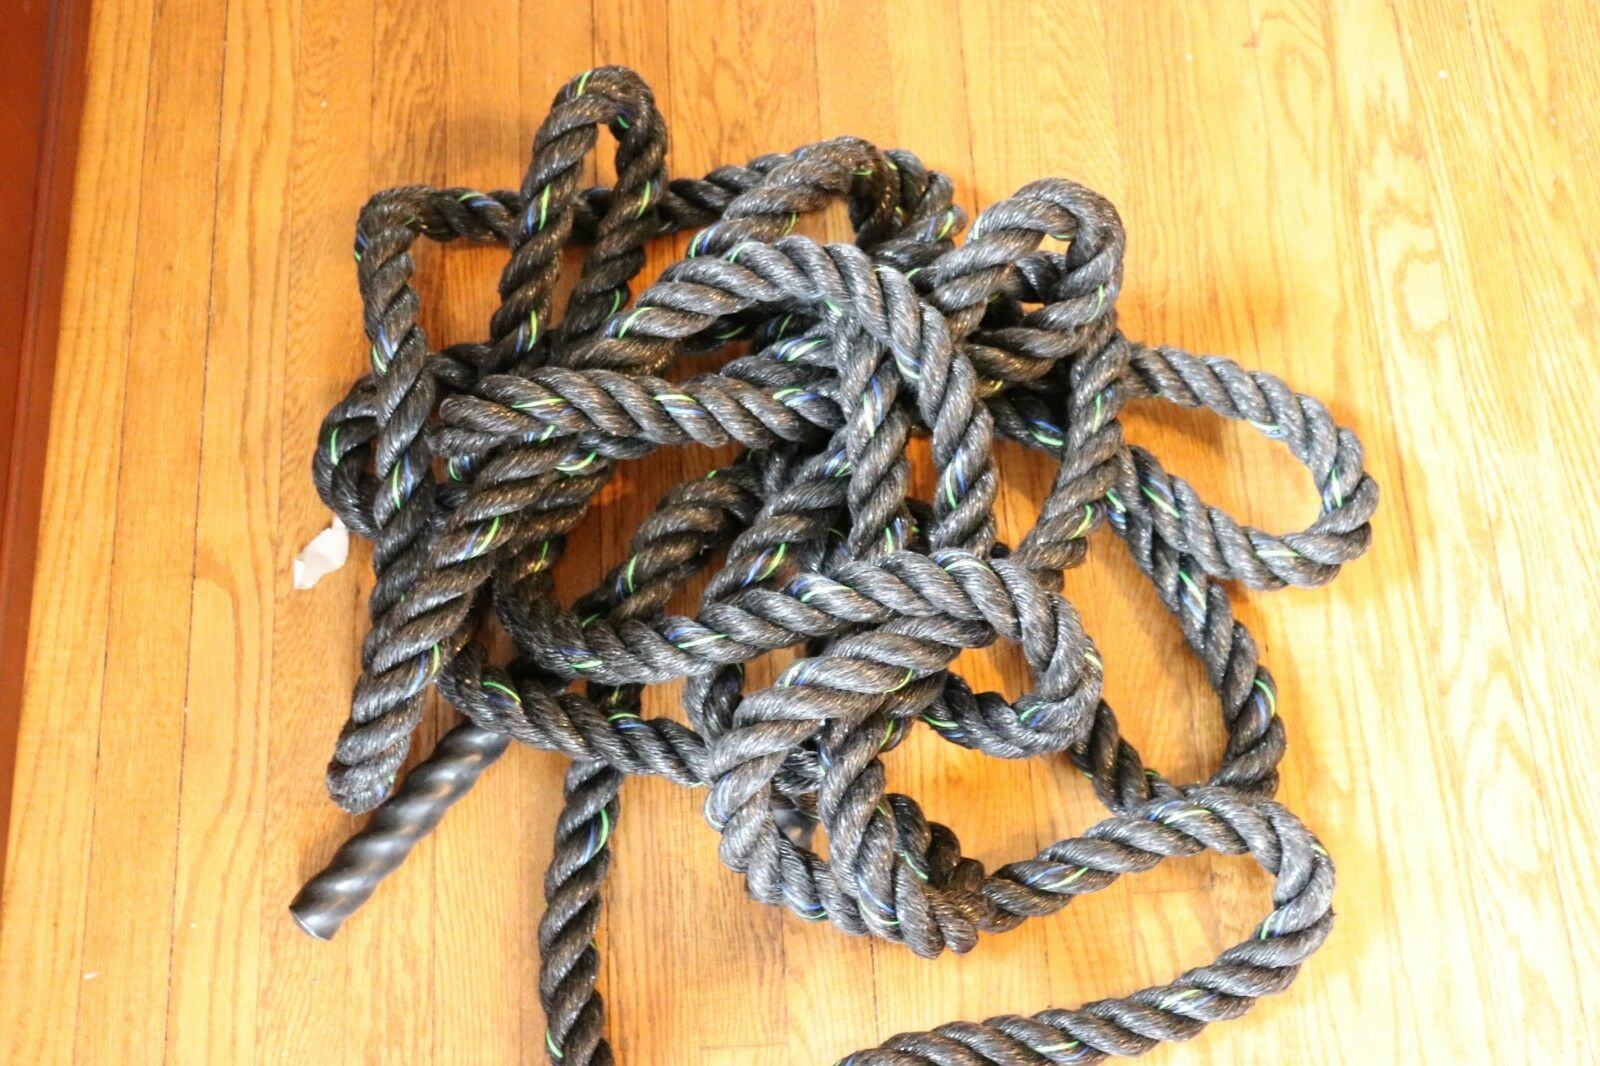 Rage Fitness Performance Training Ropes 40' Conditioning Ropes  1.5  Rope